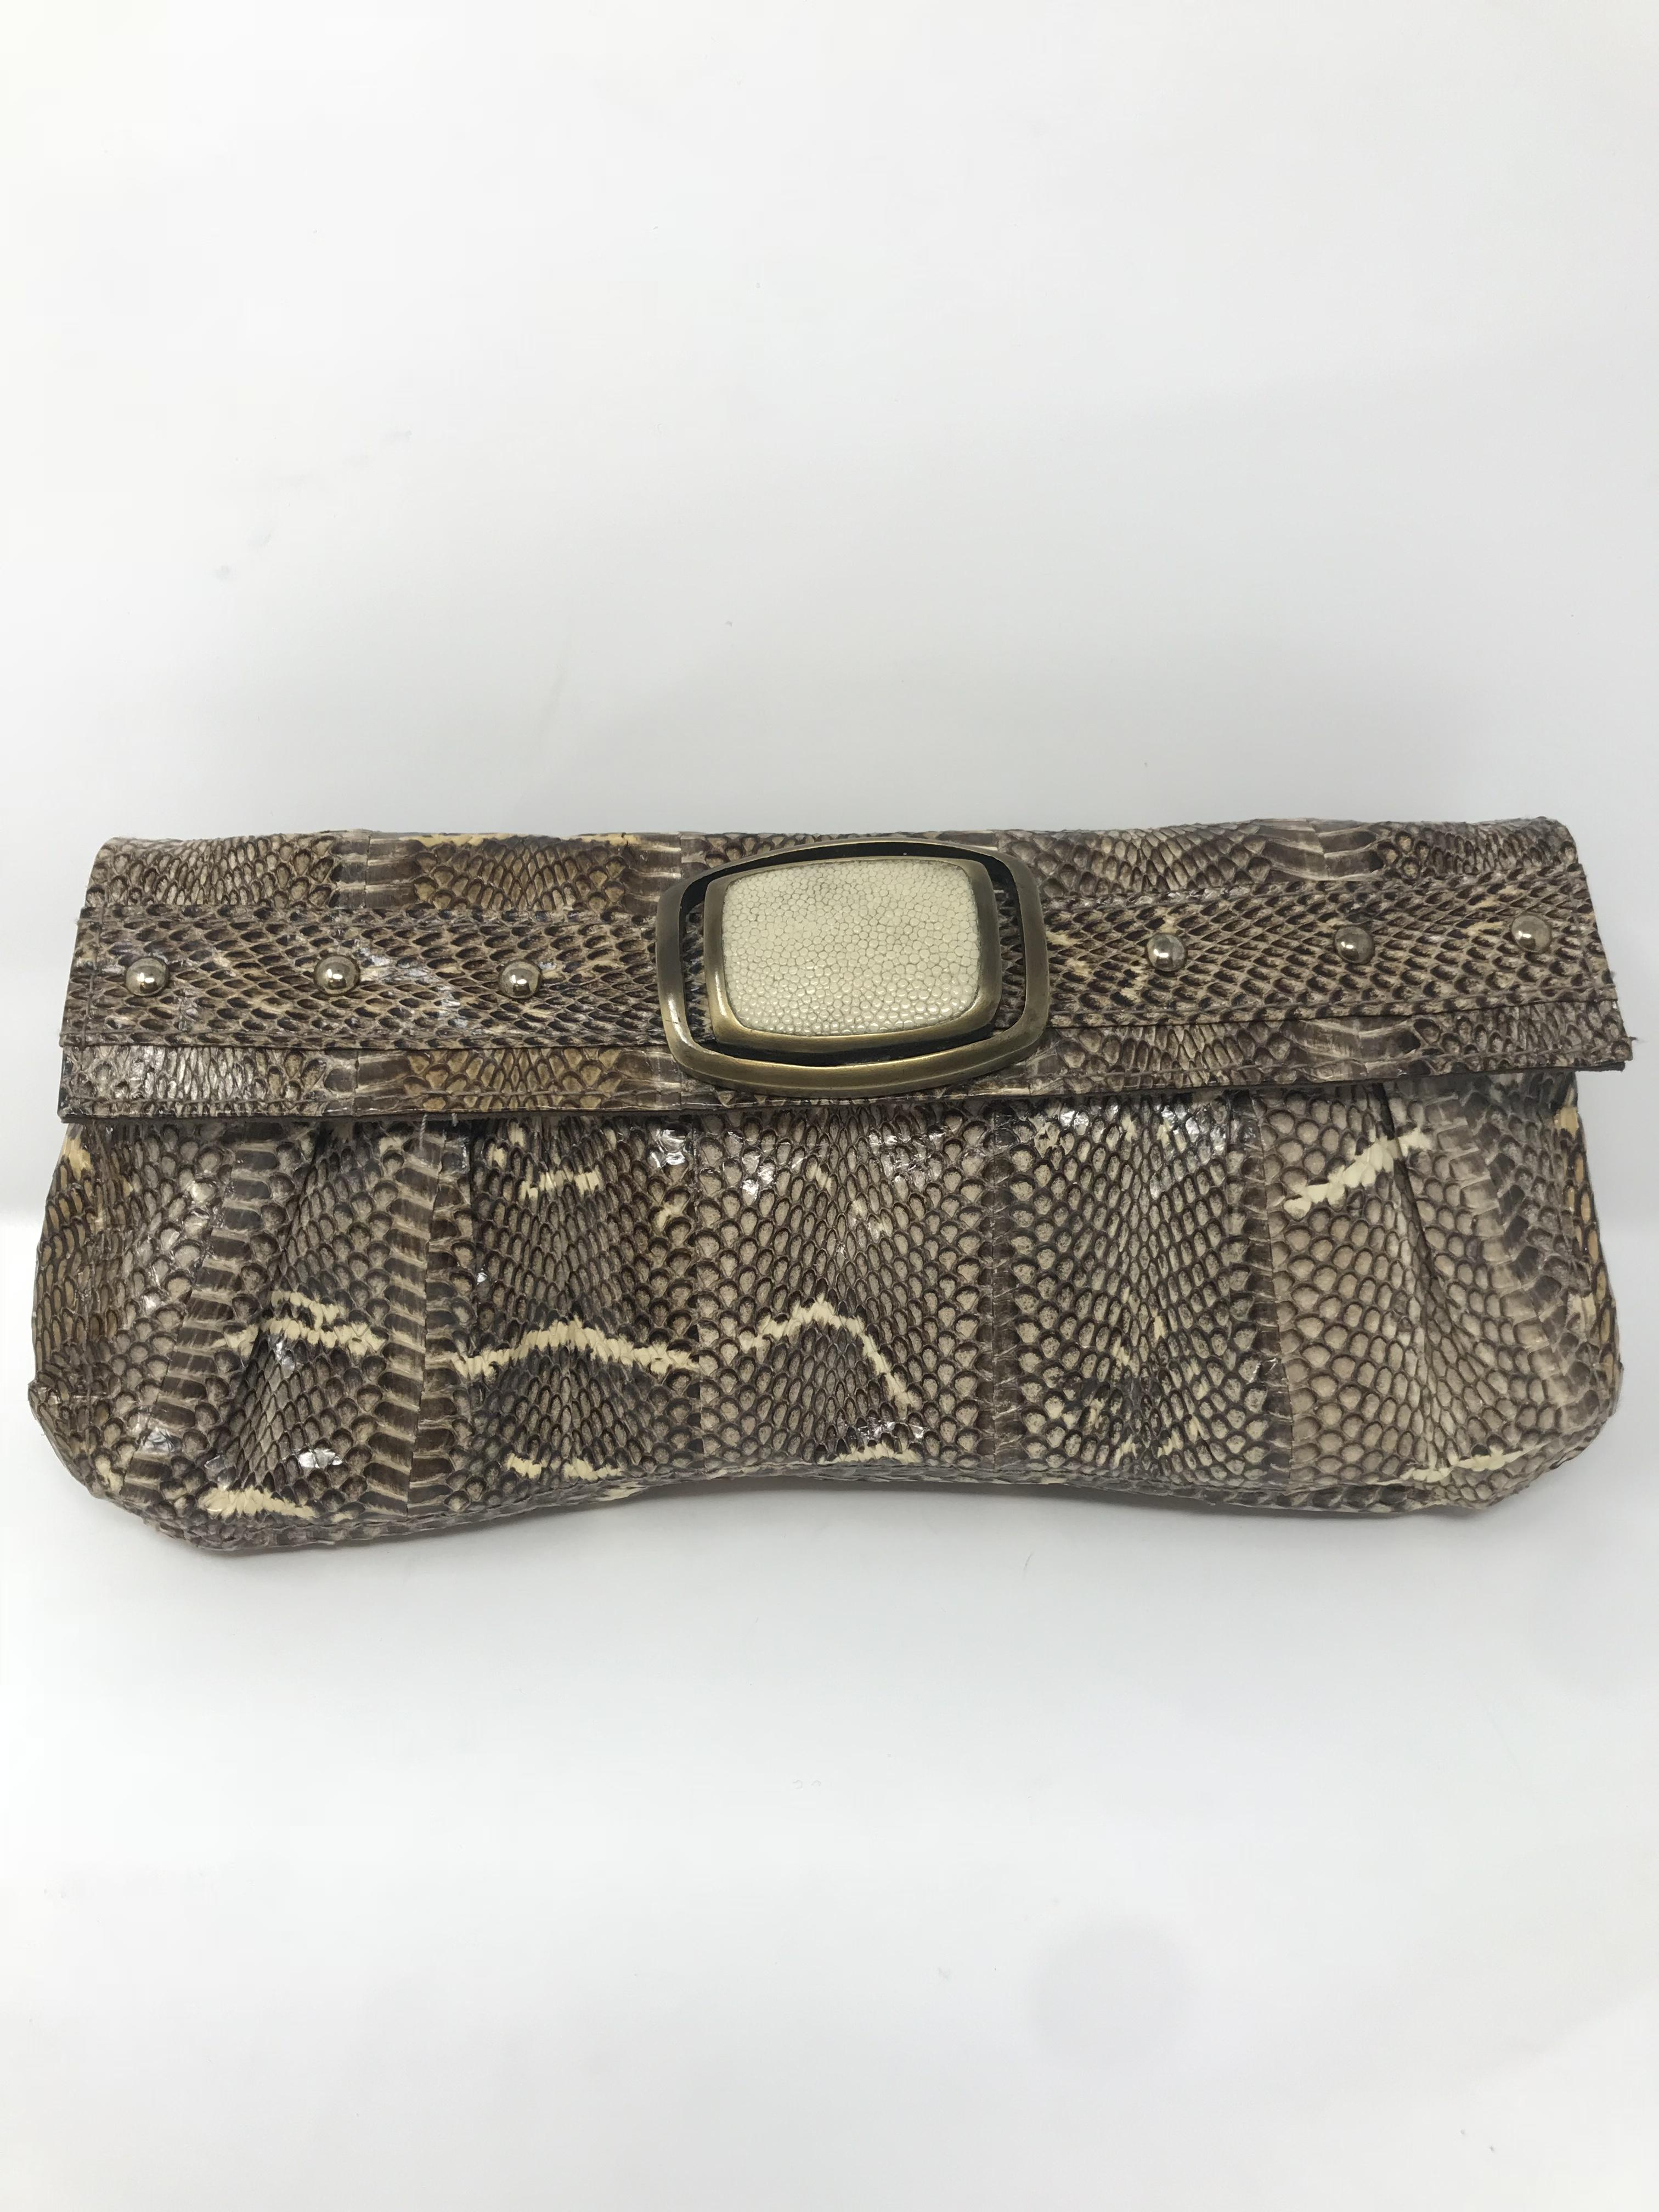 R&Y Augousti reptile Purses, Handbags Price: $126.99